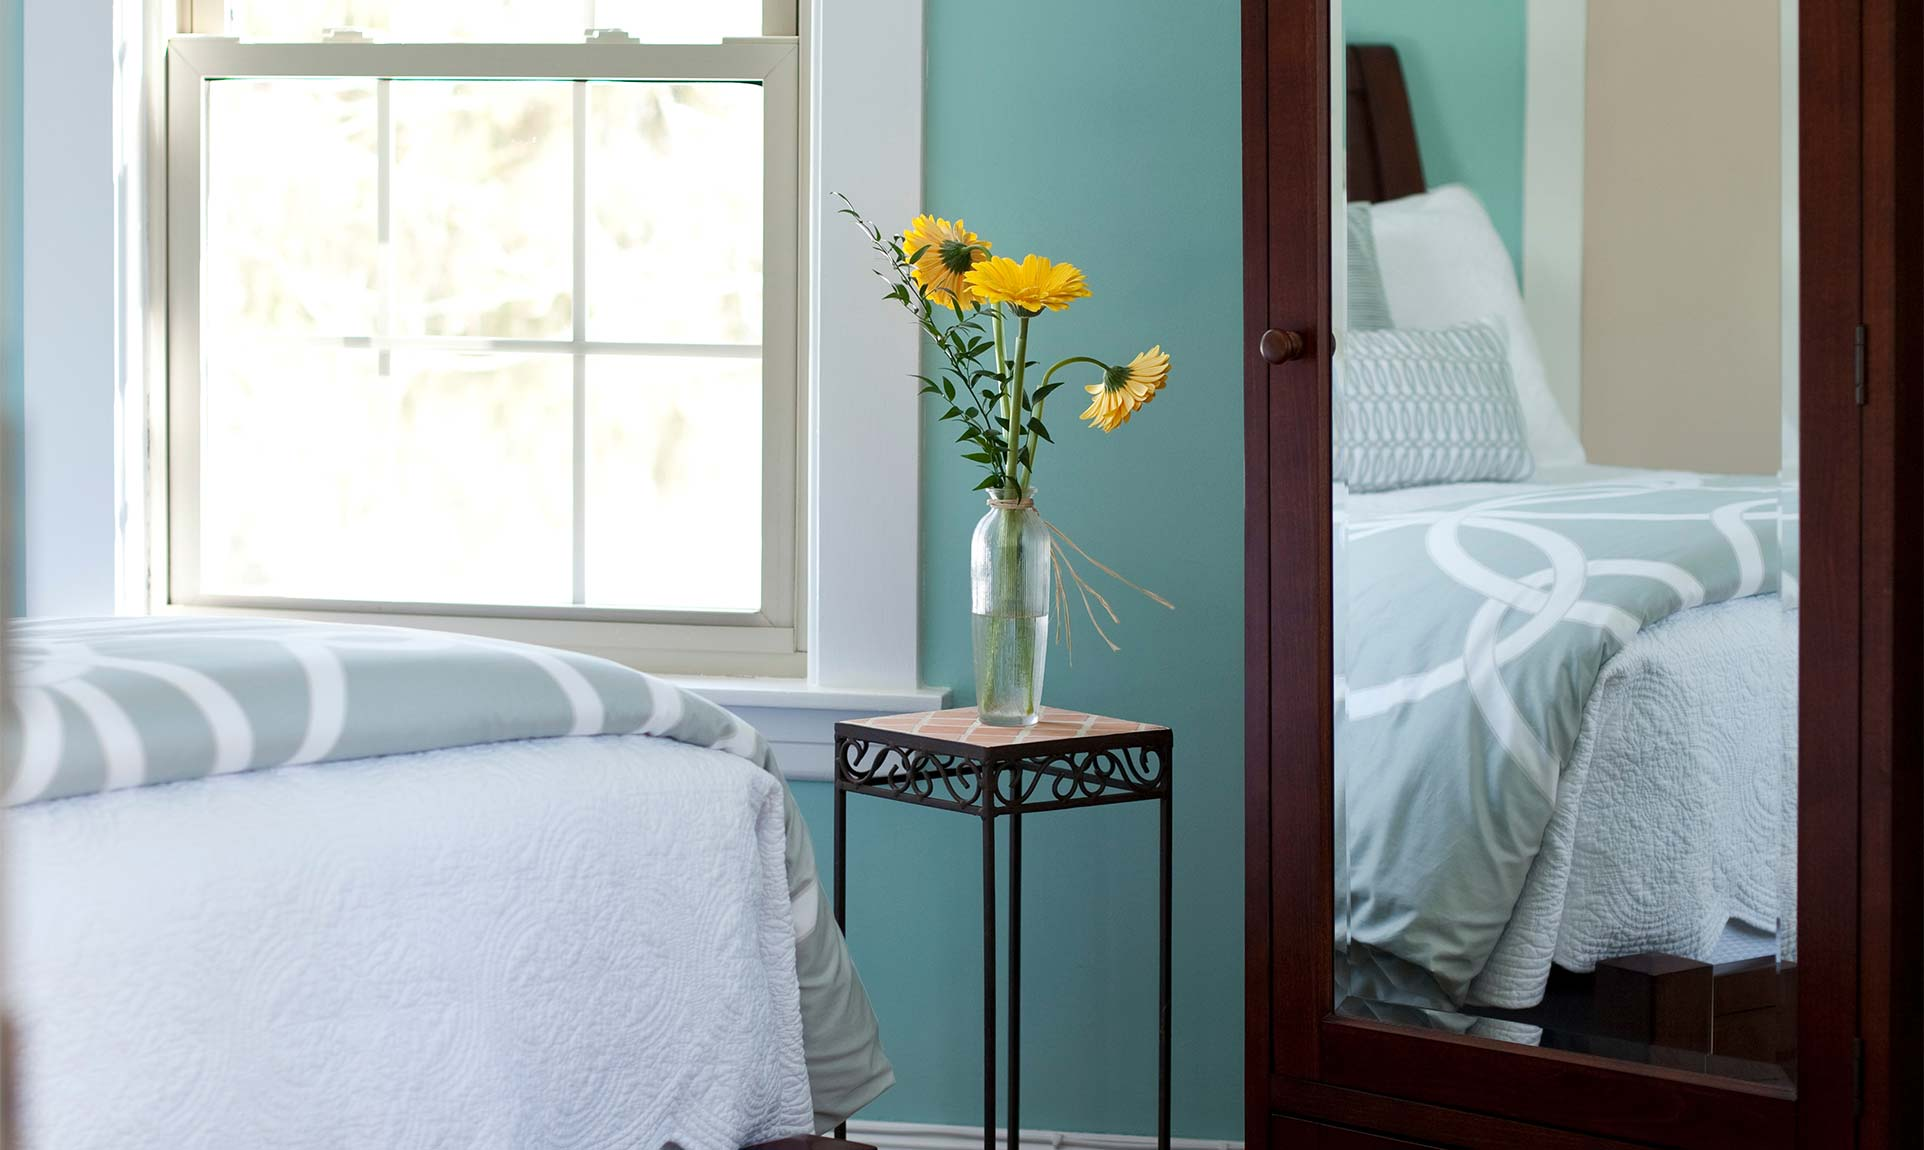 Full length mirror next to a side table with sunflowers in a vase